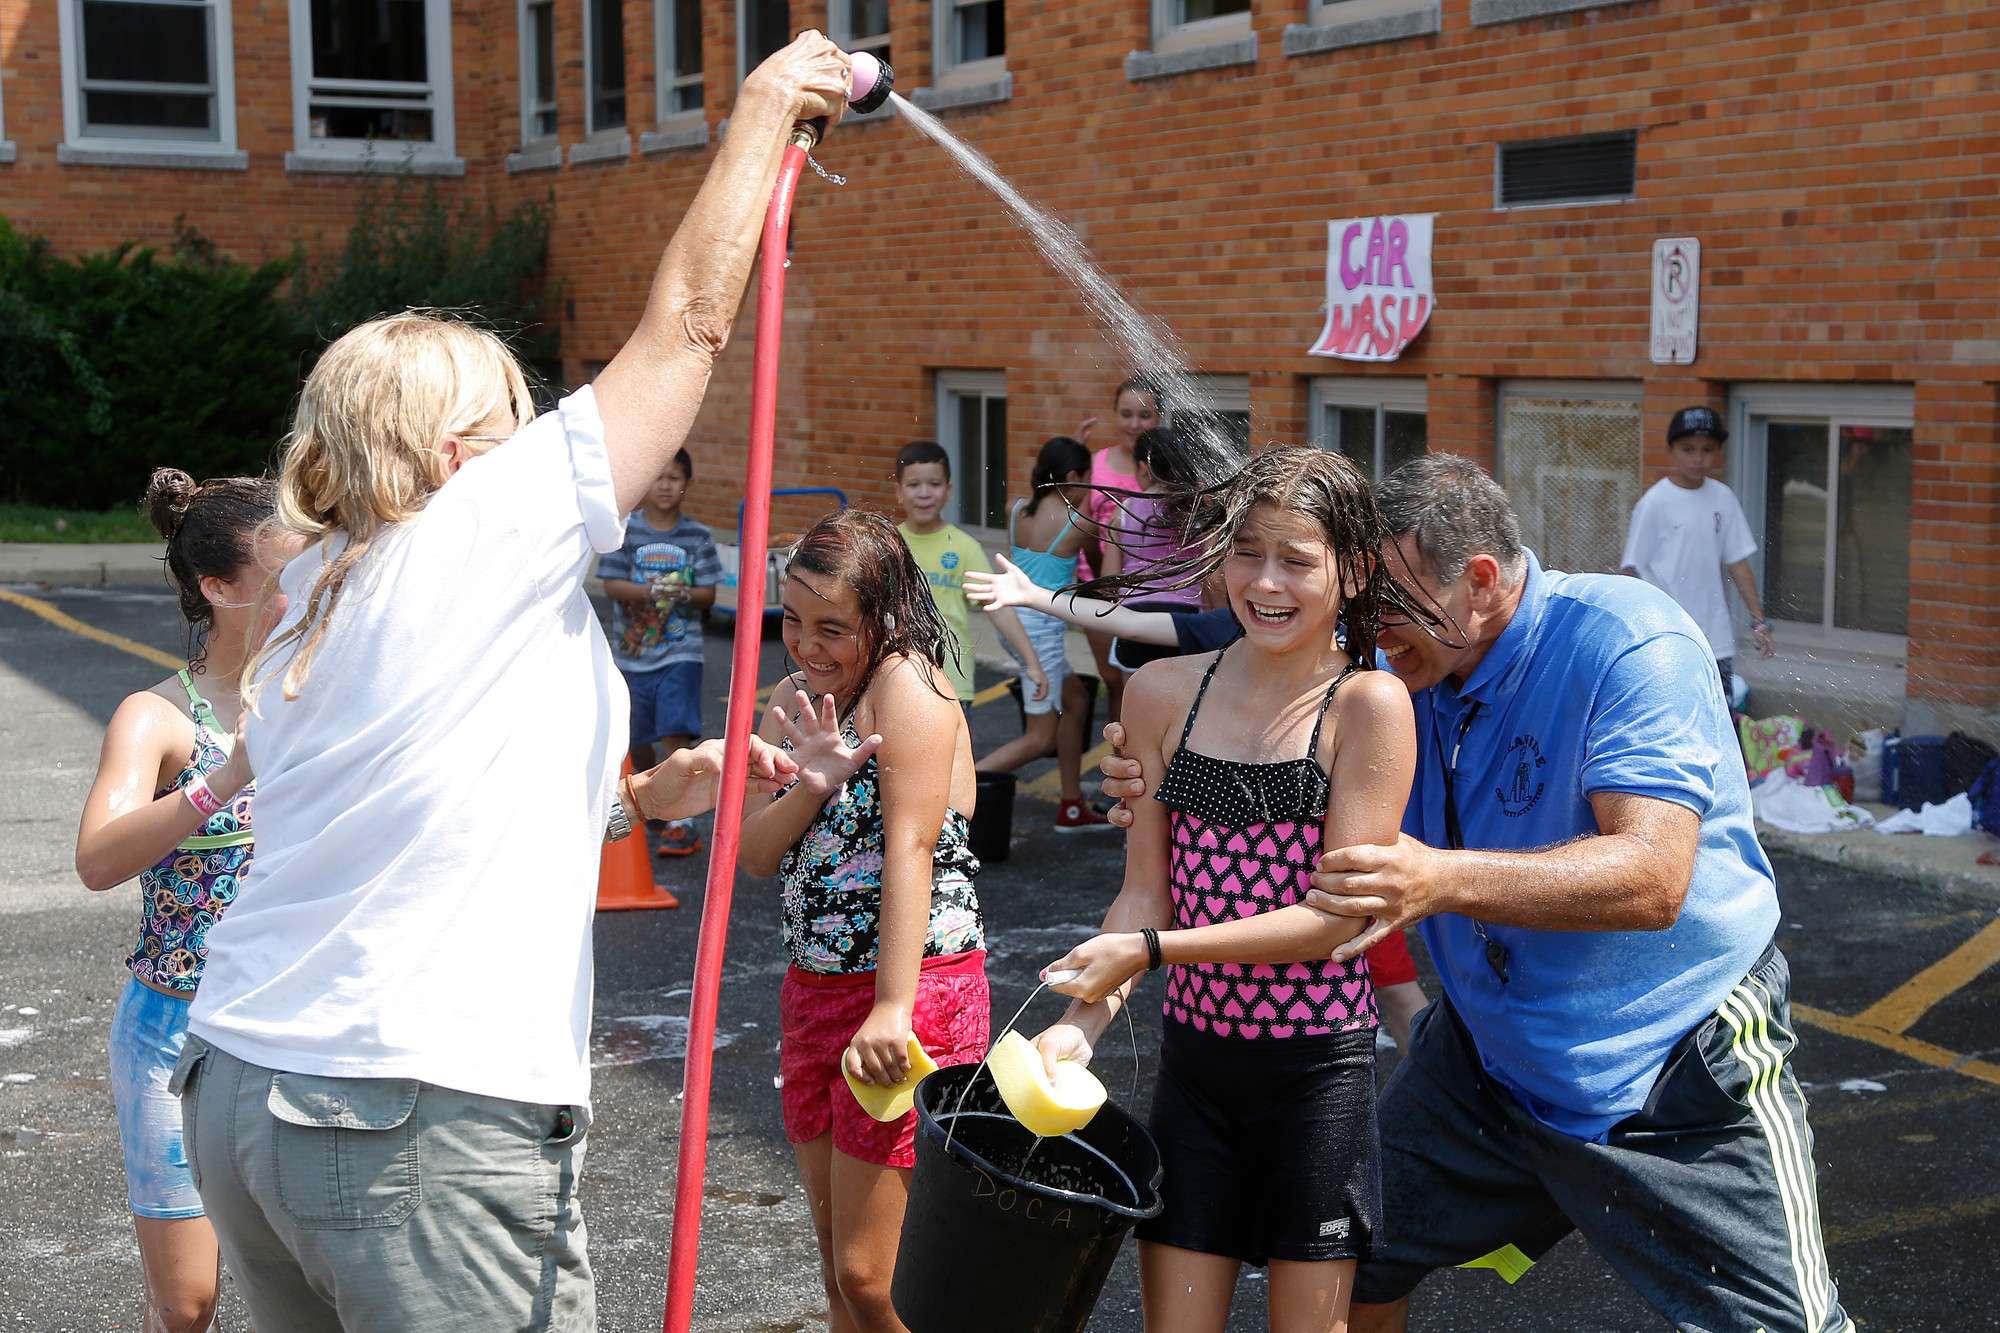 Extended Playground Camp head counselor Chris Marzo tried to avoid being soaked by camp supervisor, Nancy Baxter, as he hid behind 6th grader Eve Scarola at the camp's fundraiser car wash.